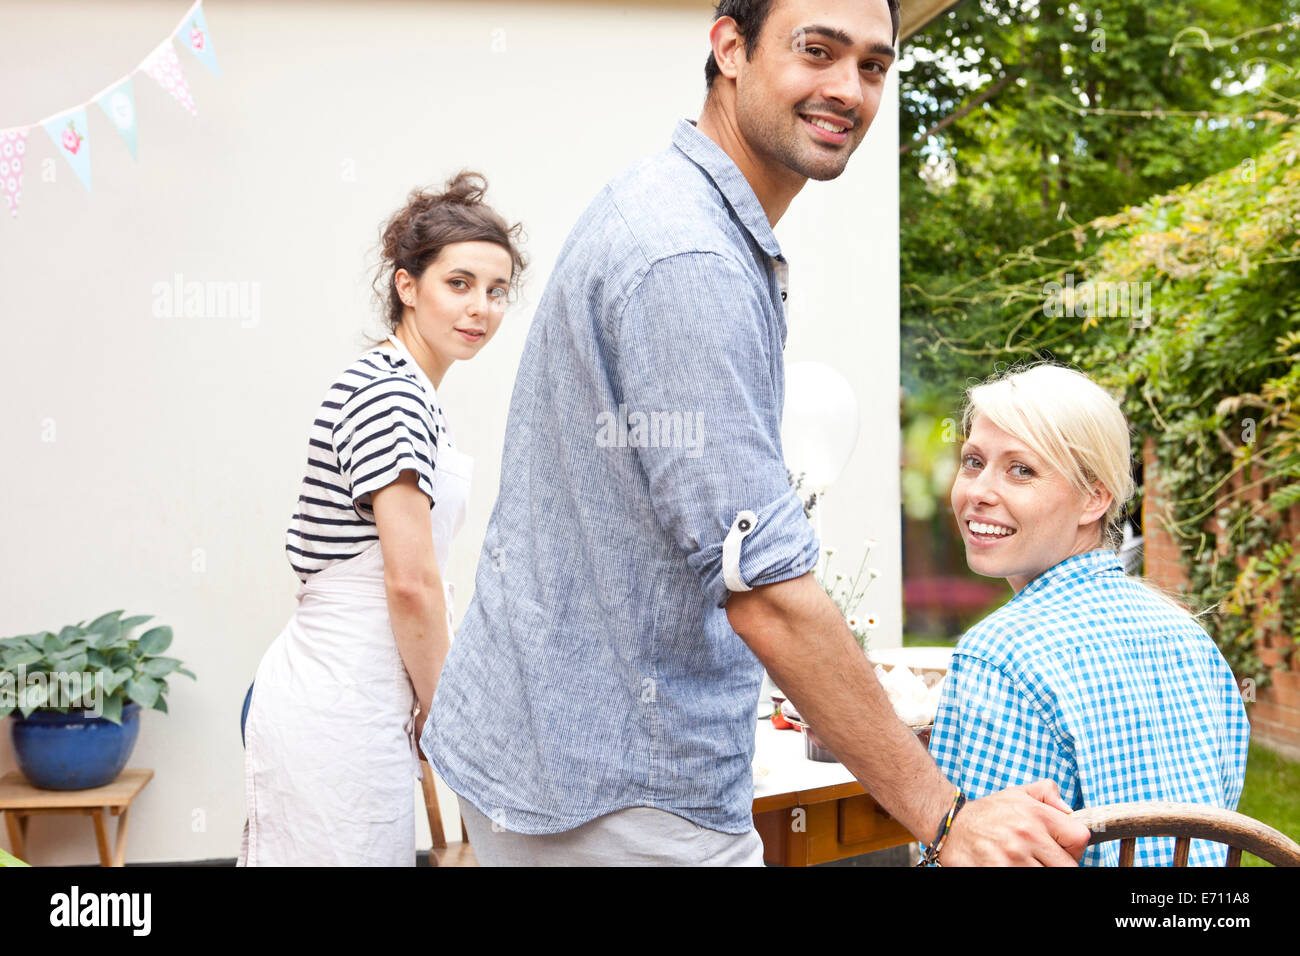 Three young adult friends at garden party - Stock Image